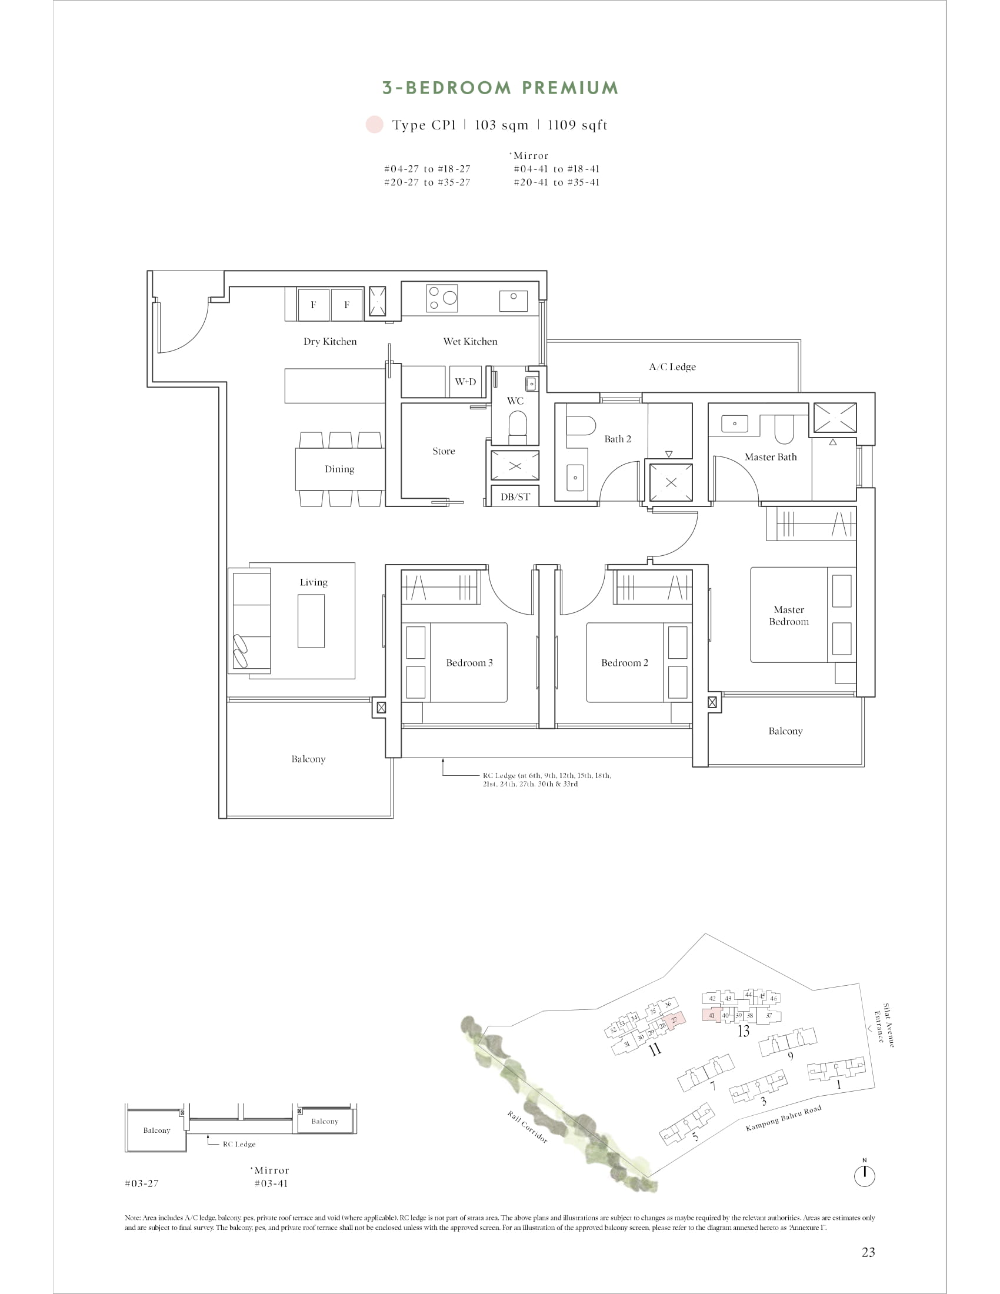 Site And Floor Plan Avenue South Residence Official Website Bernard Koh Sustainable Building Design Residences Cluster House